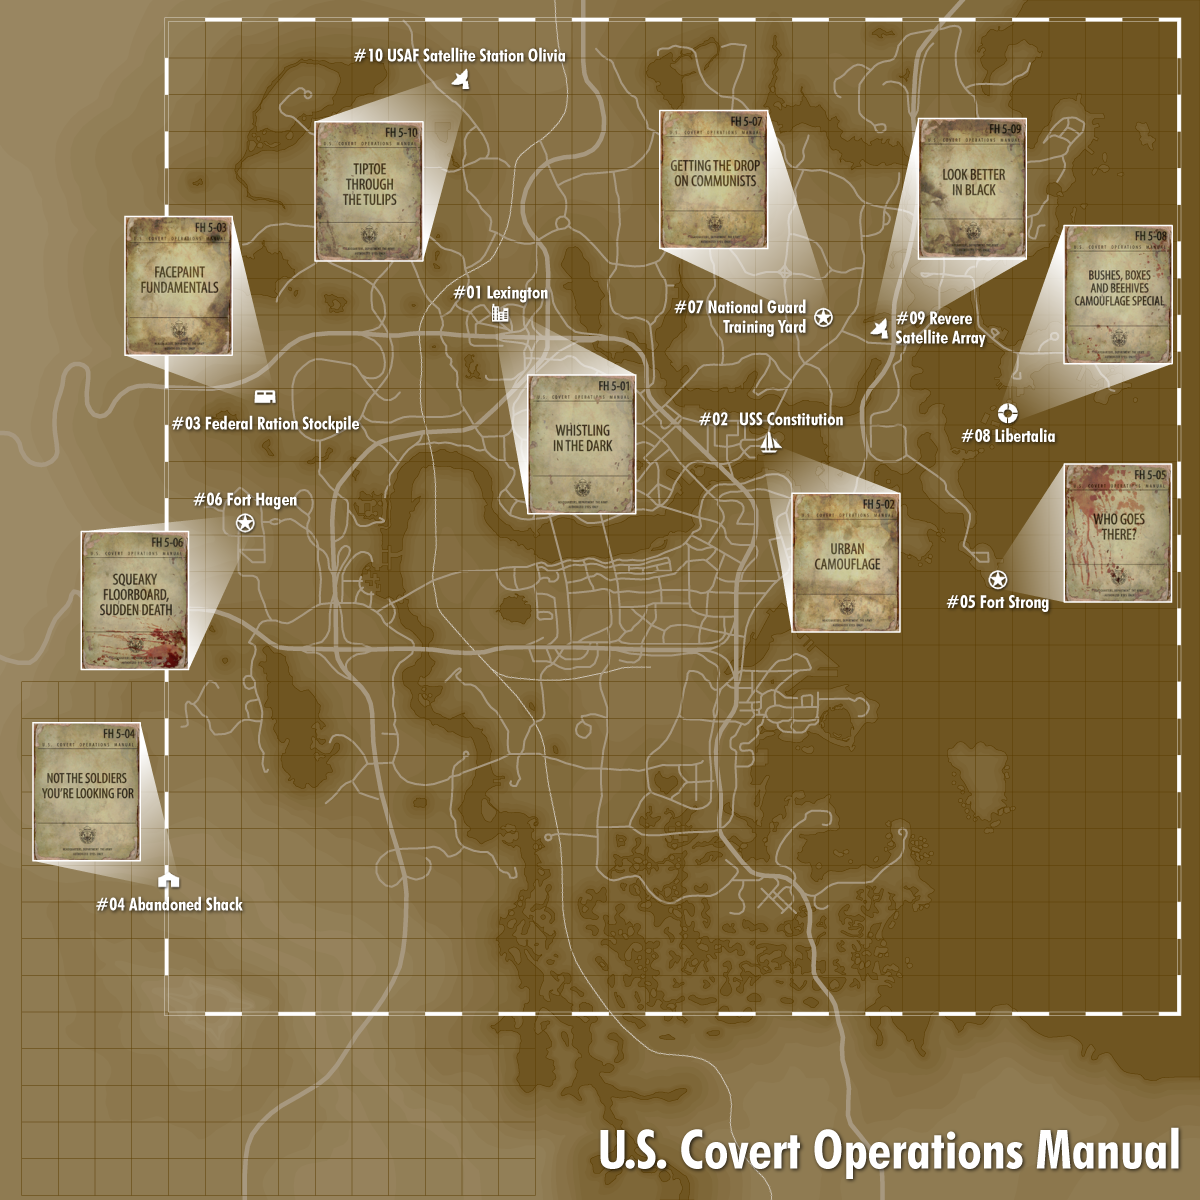 US Covert Operations Manual Fallout Wiki FANDOM Powered By Wikia - Fallout game map of us